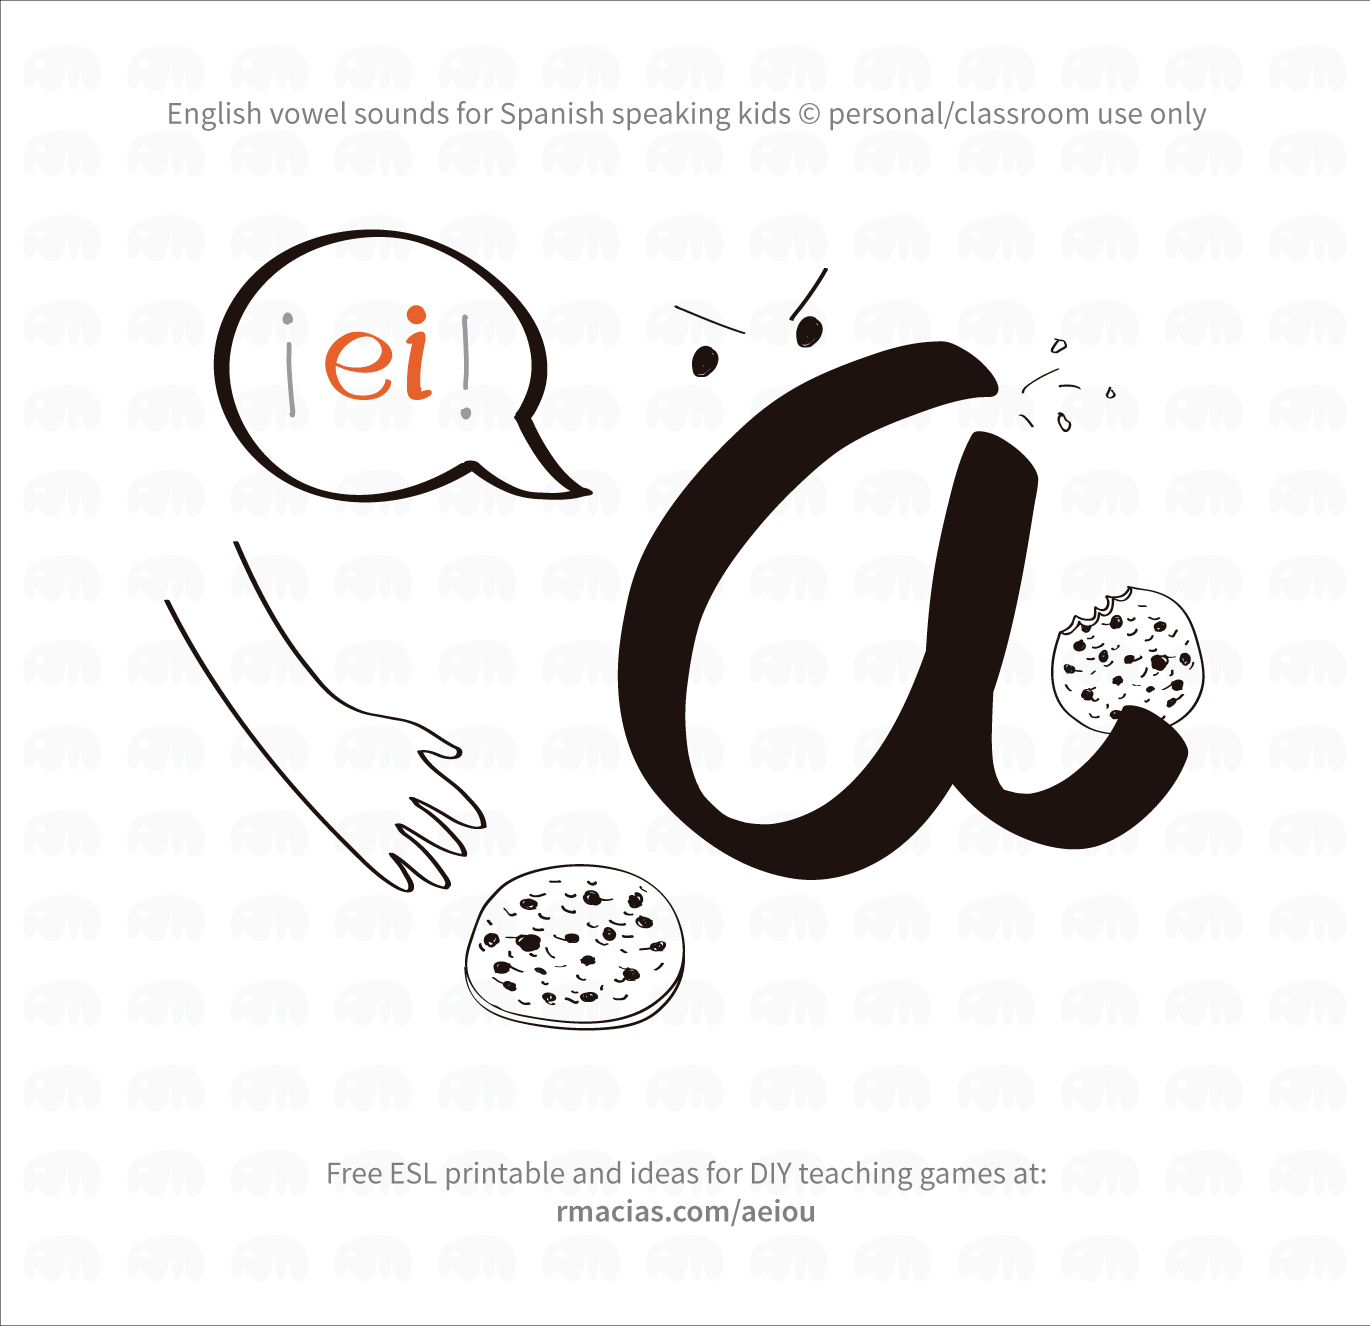 "Funny vowels illustrations for teaching in a humorous way English vowels names to Spanish-speakers, using expressions that are already familiar to Spanish-speaking students. I made them using the Spanish from LatinAmerica - Mexico ?? A - ¡ei! (letter ""a"" is yelling at someone that wants to steal a cookie) E - ¡iii! (letter ""e"" is playing on a swing) I - ¡ai! (letter ""I"" is getting stung by a bee) O - ou (letter ""o"" has dropped its ice cream on the floor) U - iu (letter ""u"" is disgusted by a poo on the floor)"